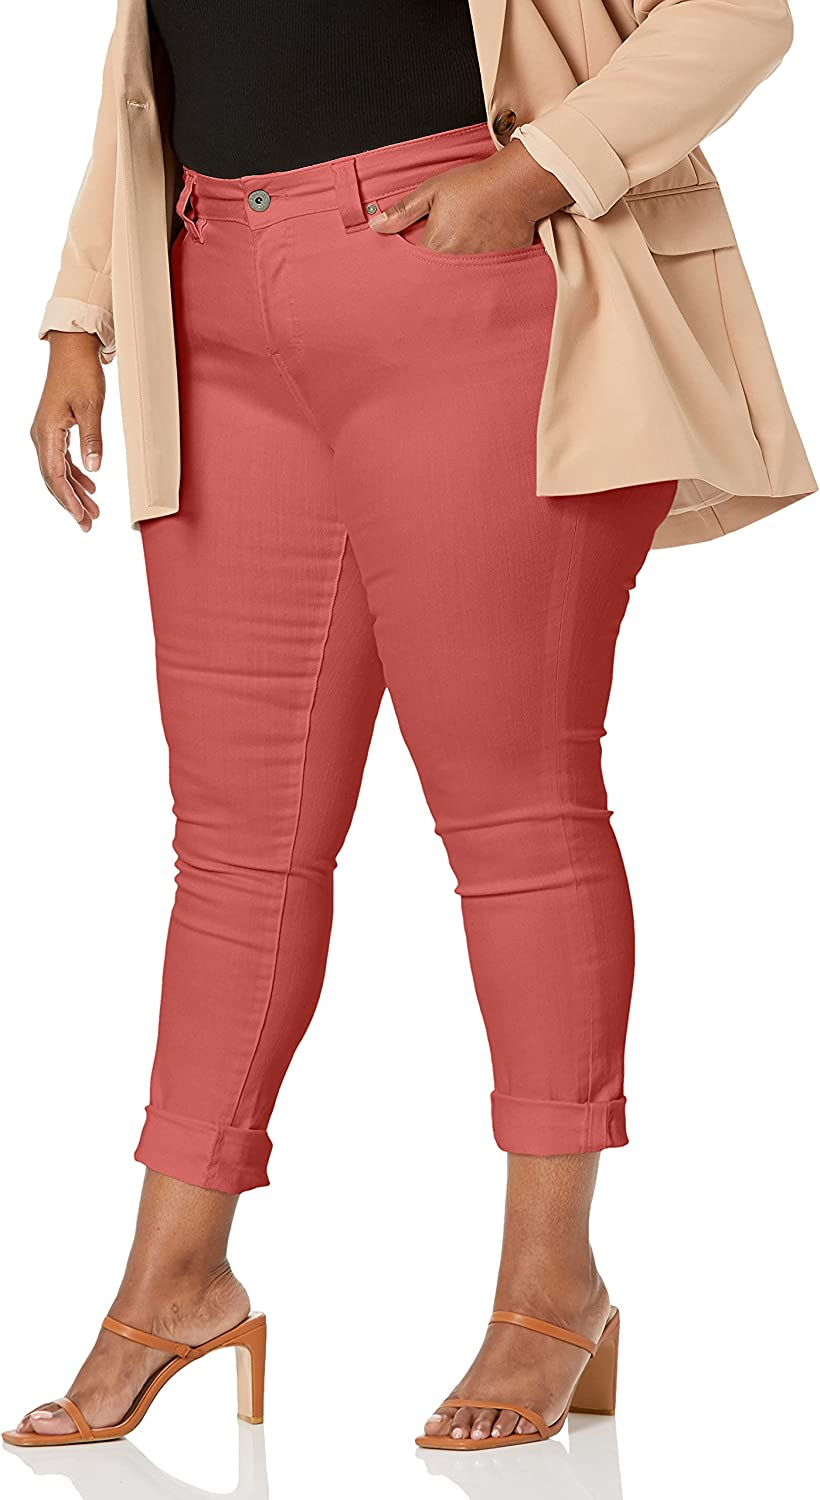 Jag Max 70% OFF Jeans New popularity Women's Plus Size Jean Girlfriend Carter